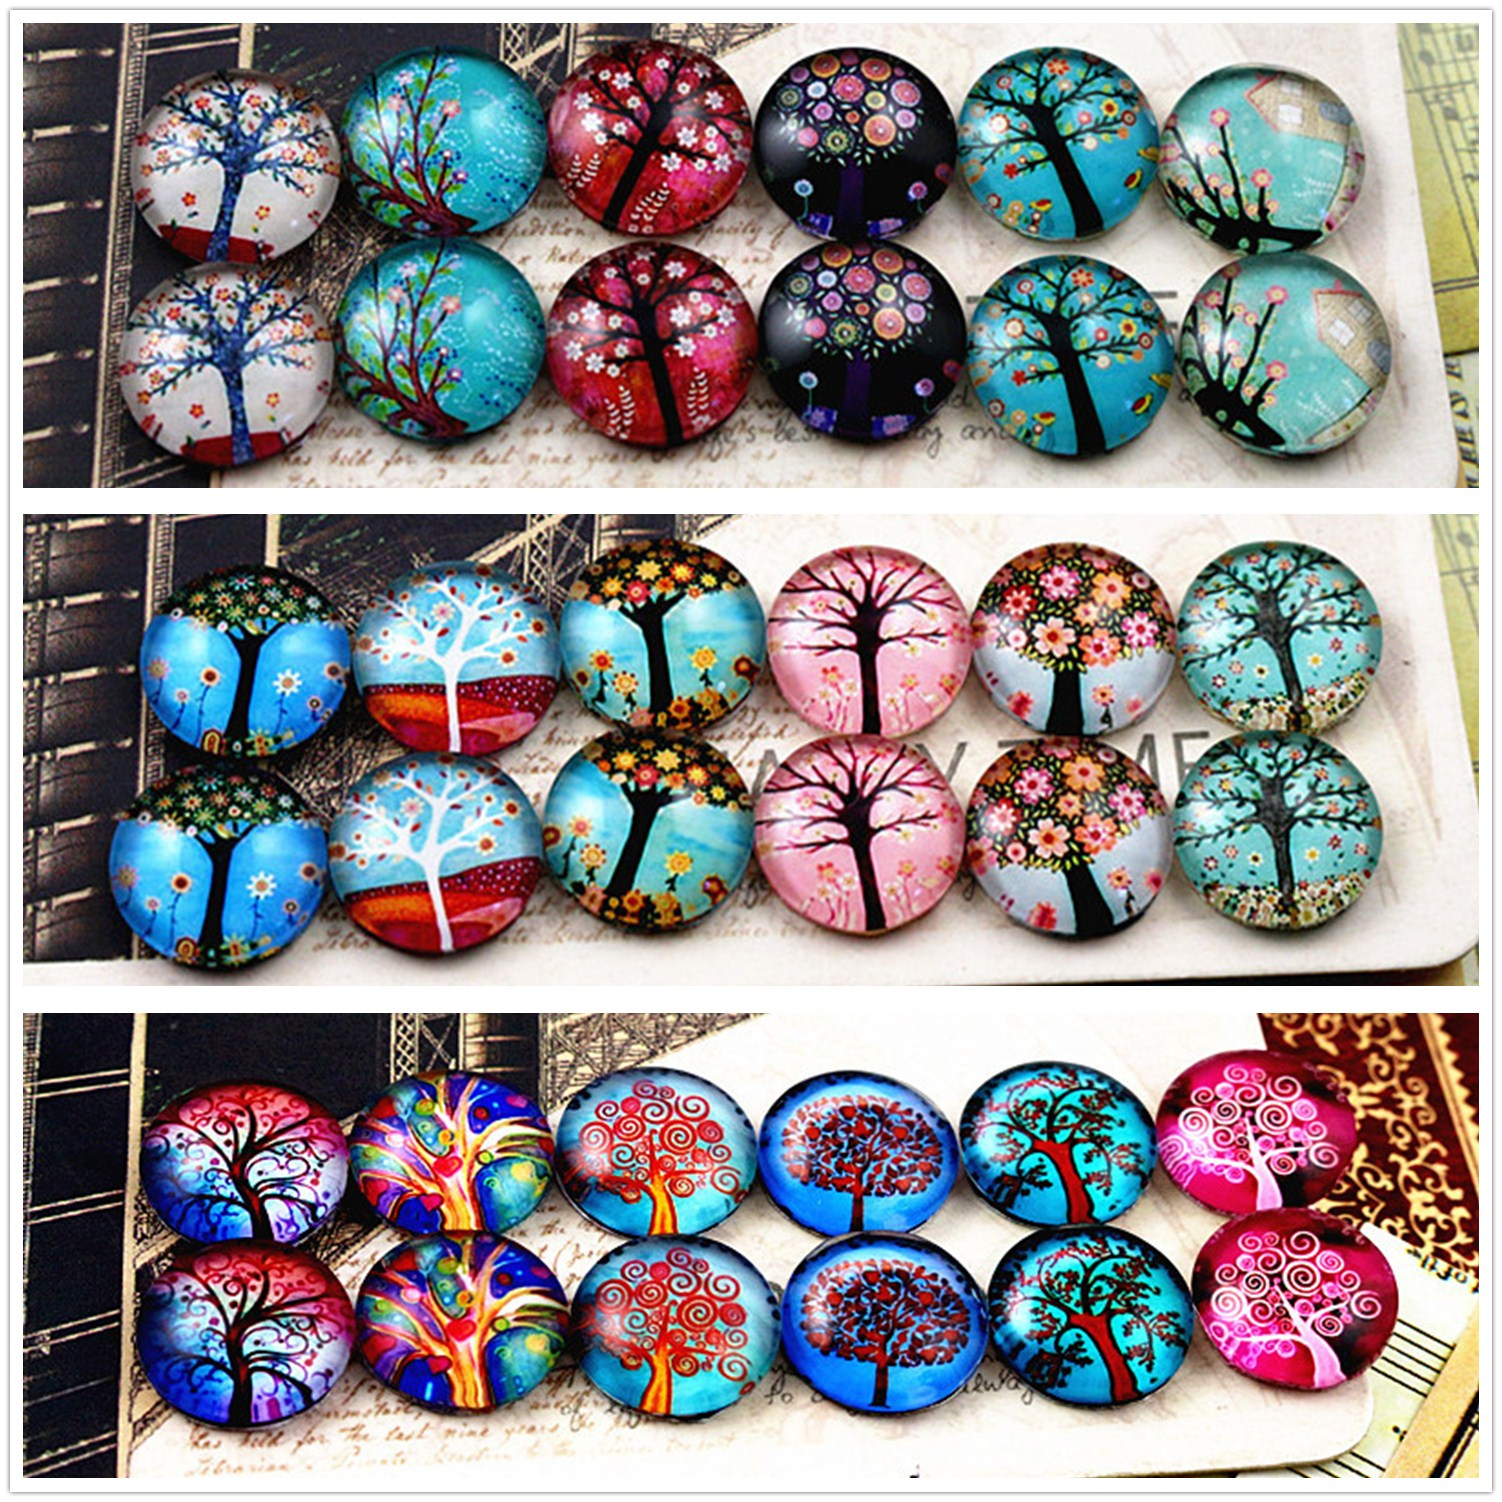 12pcs/lot (One Set) Three Style Fit 12mm Fashion Tree Handmade Glass Cabochons Pattern Domed Jewelry Accessories Supplies 12pcs lot one set two style 12mm blue snowflakes handmade glass cabochons pattern domed jewelry accessories supplies